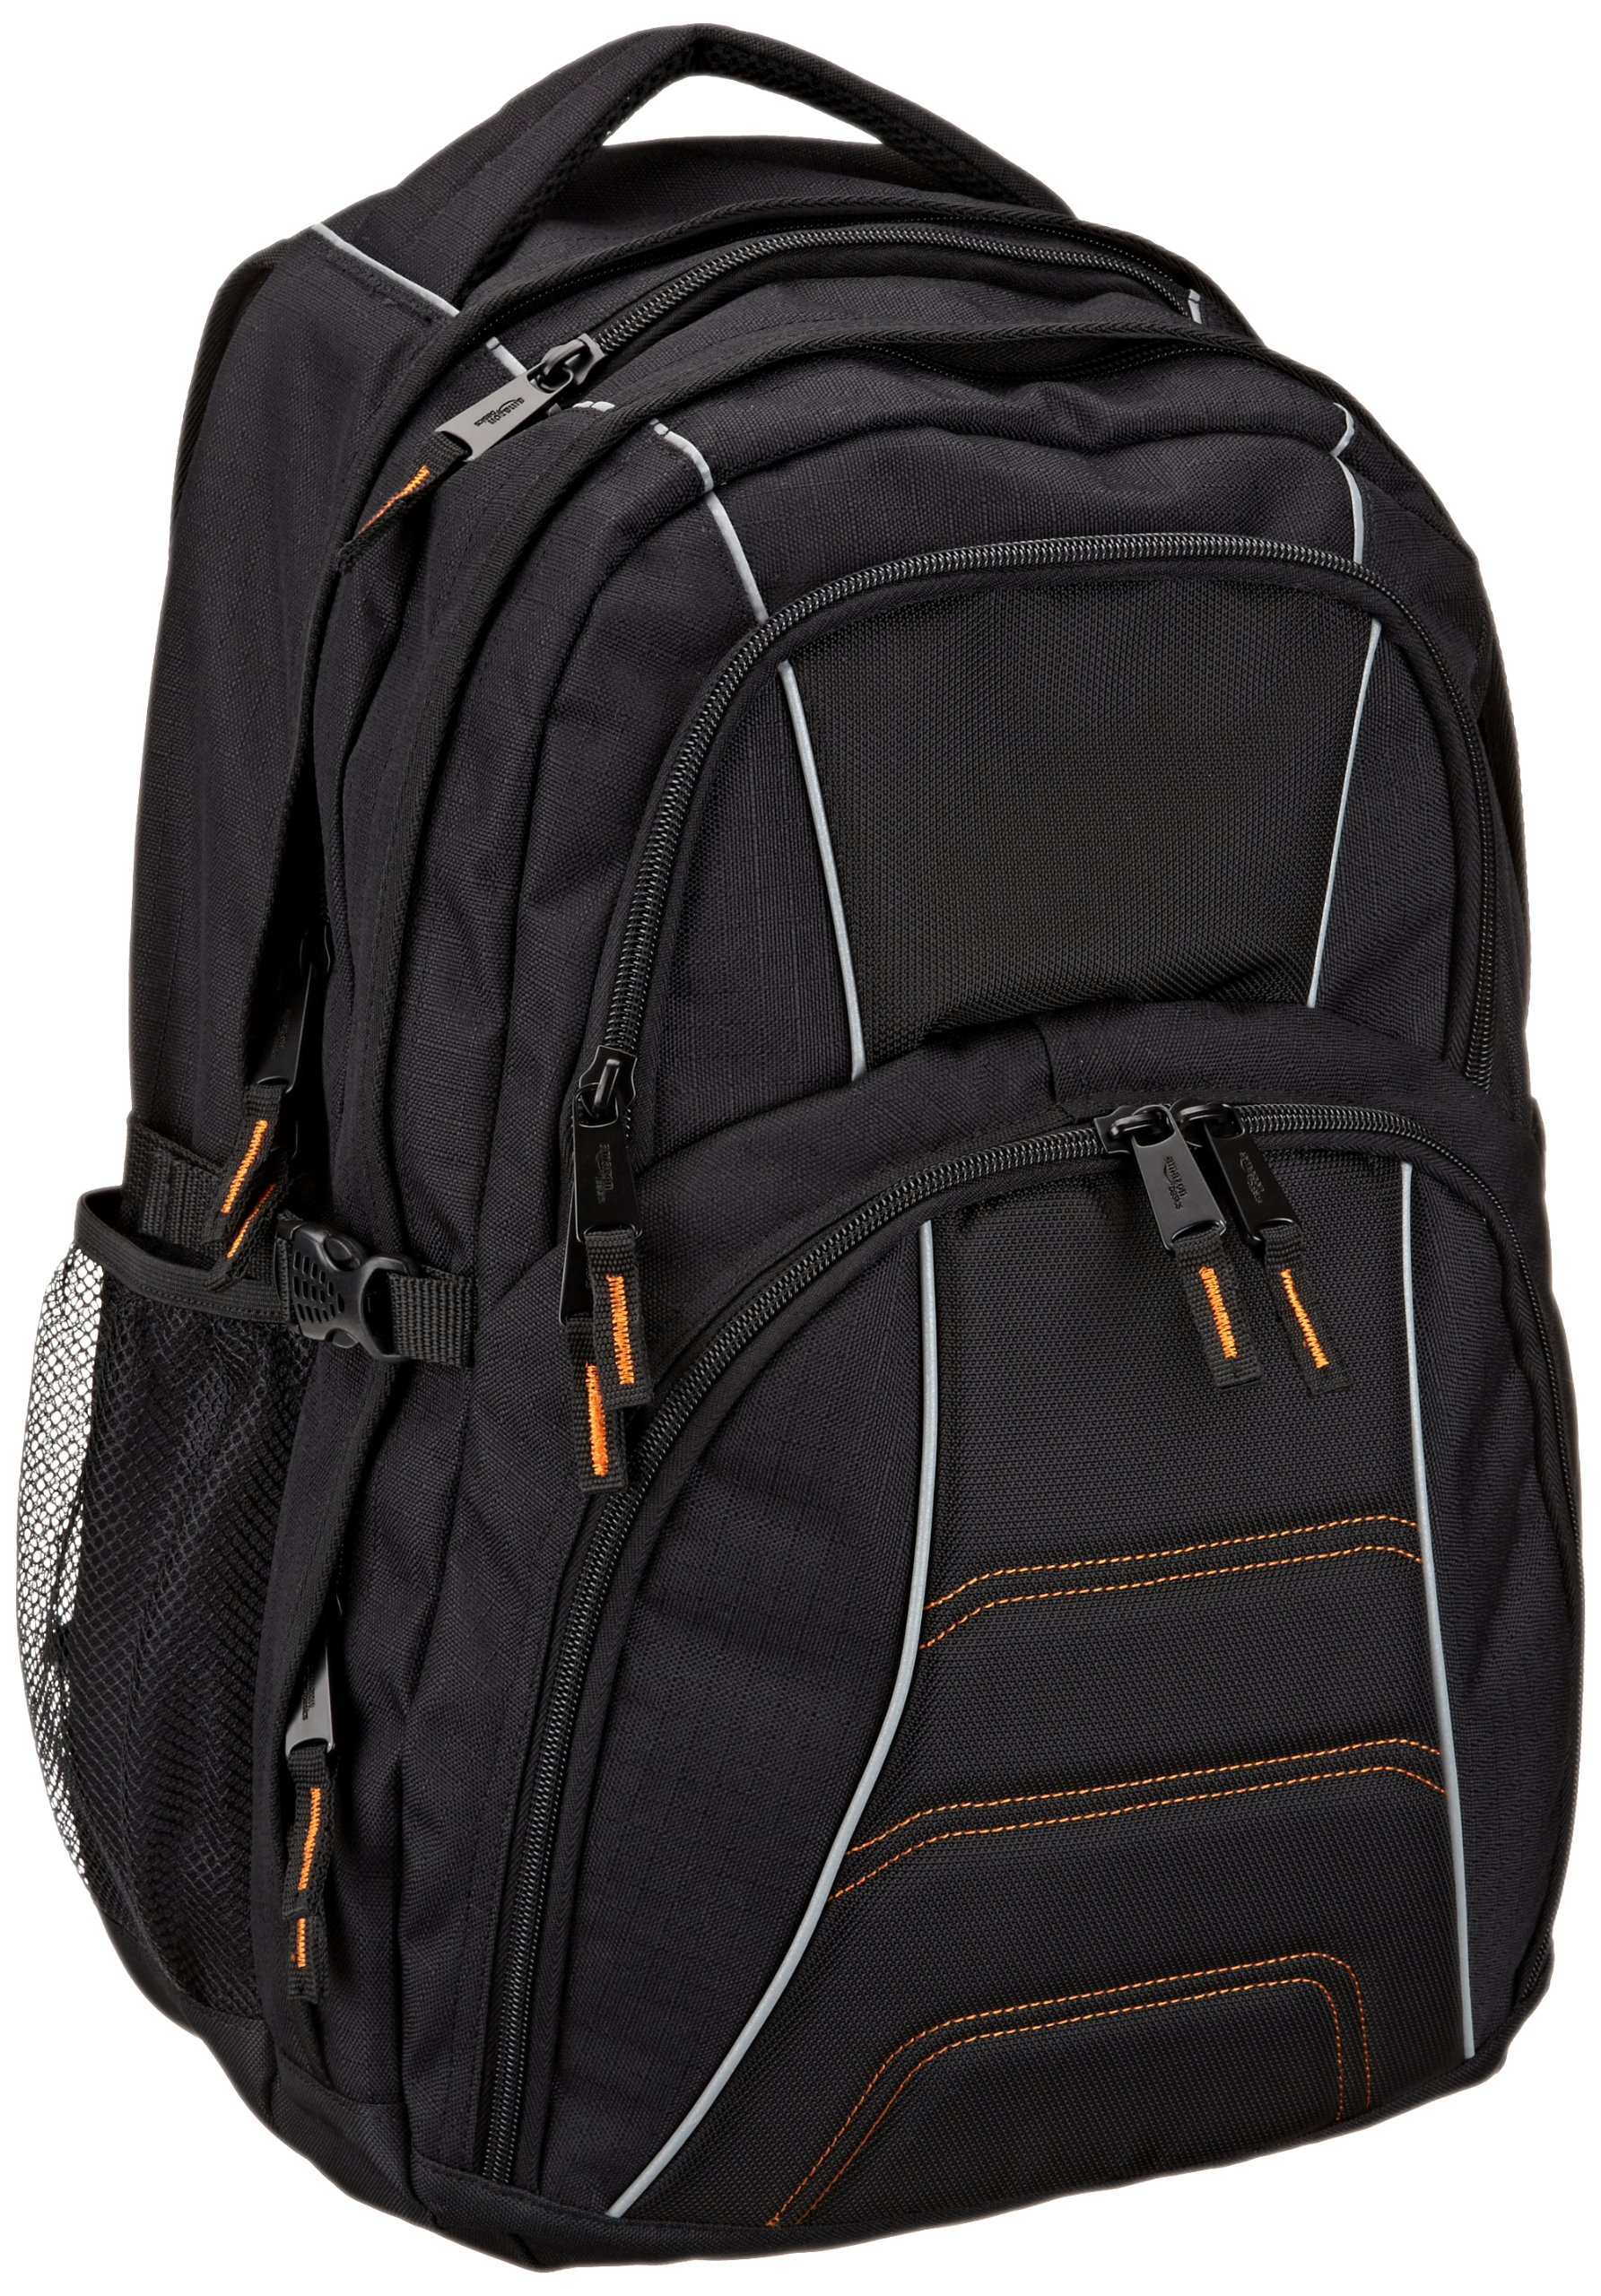 Amazon Basics Laptop Computer Backpack – Fits Up To 17 Inch Laptops